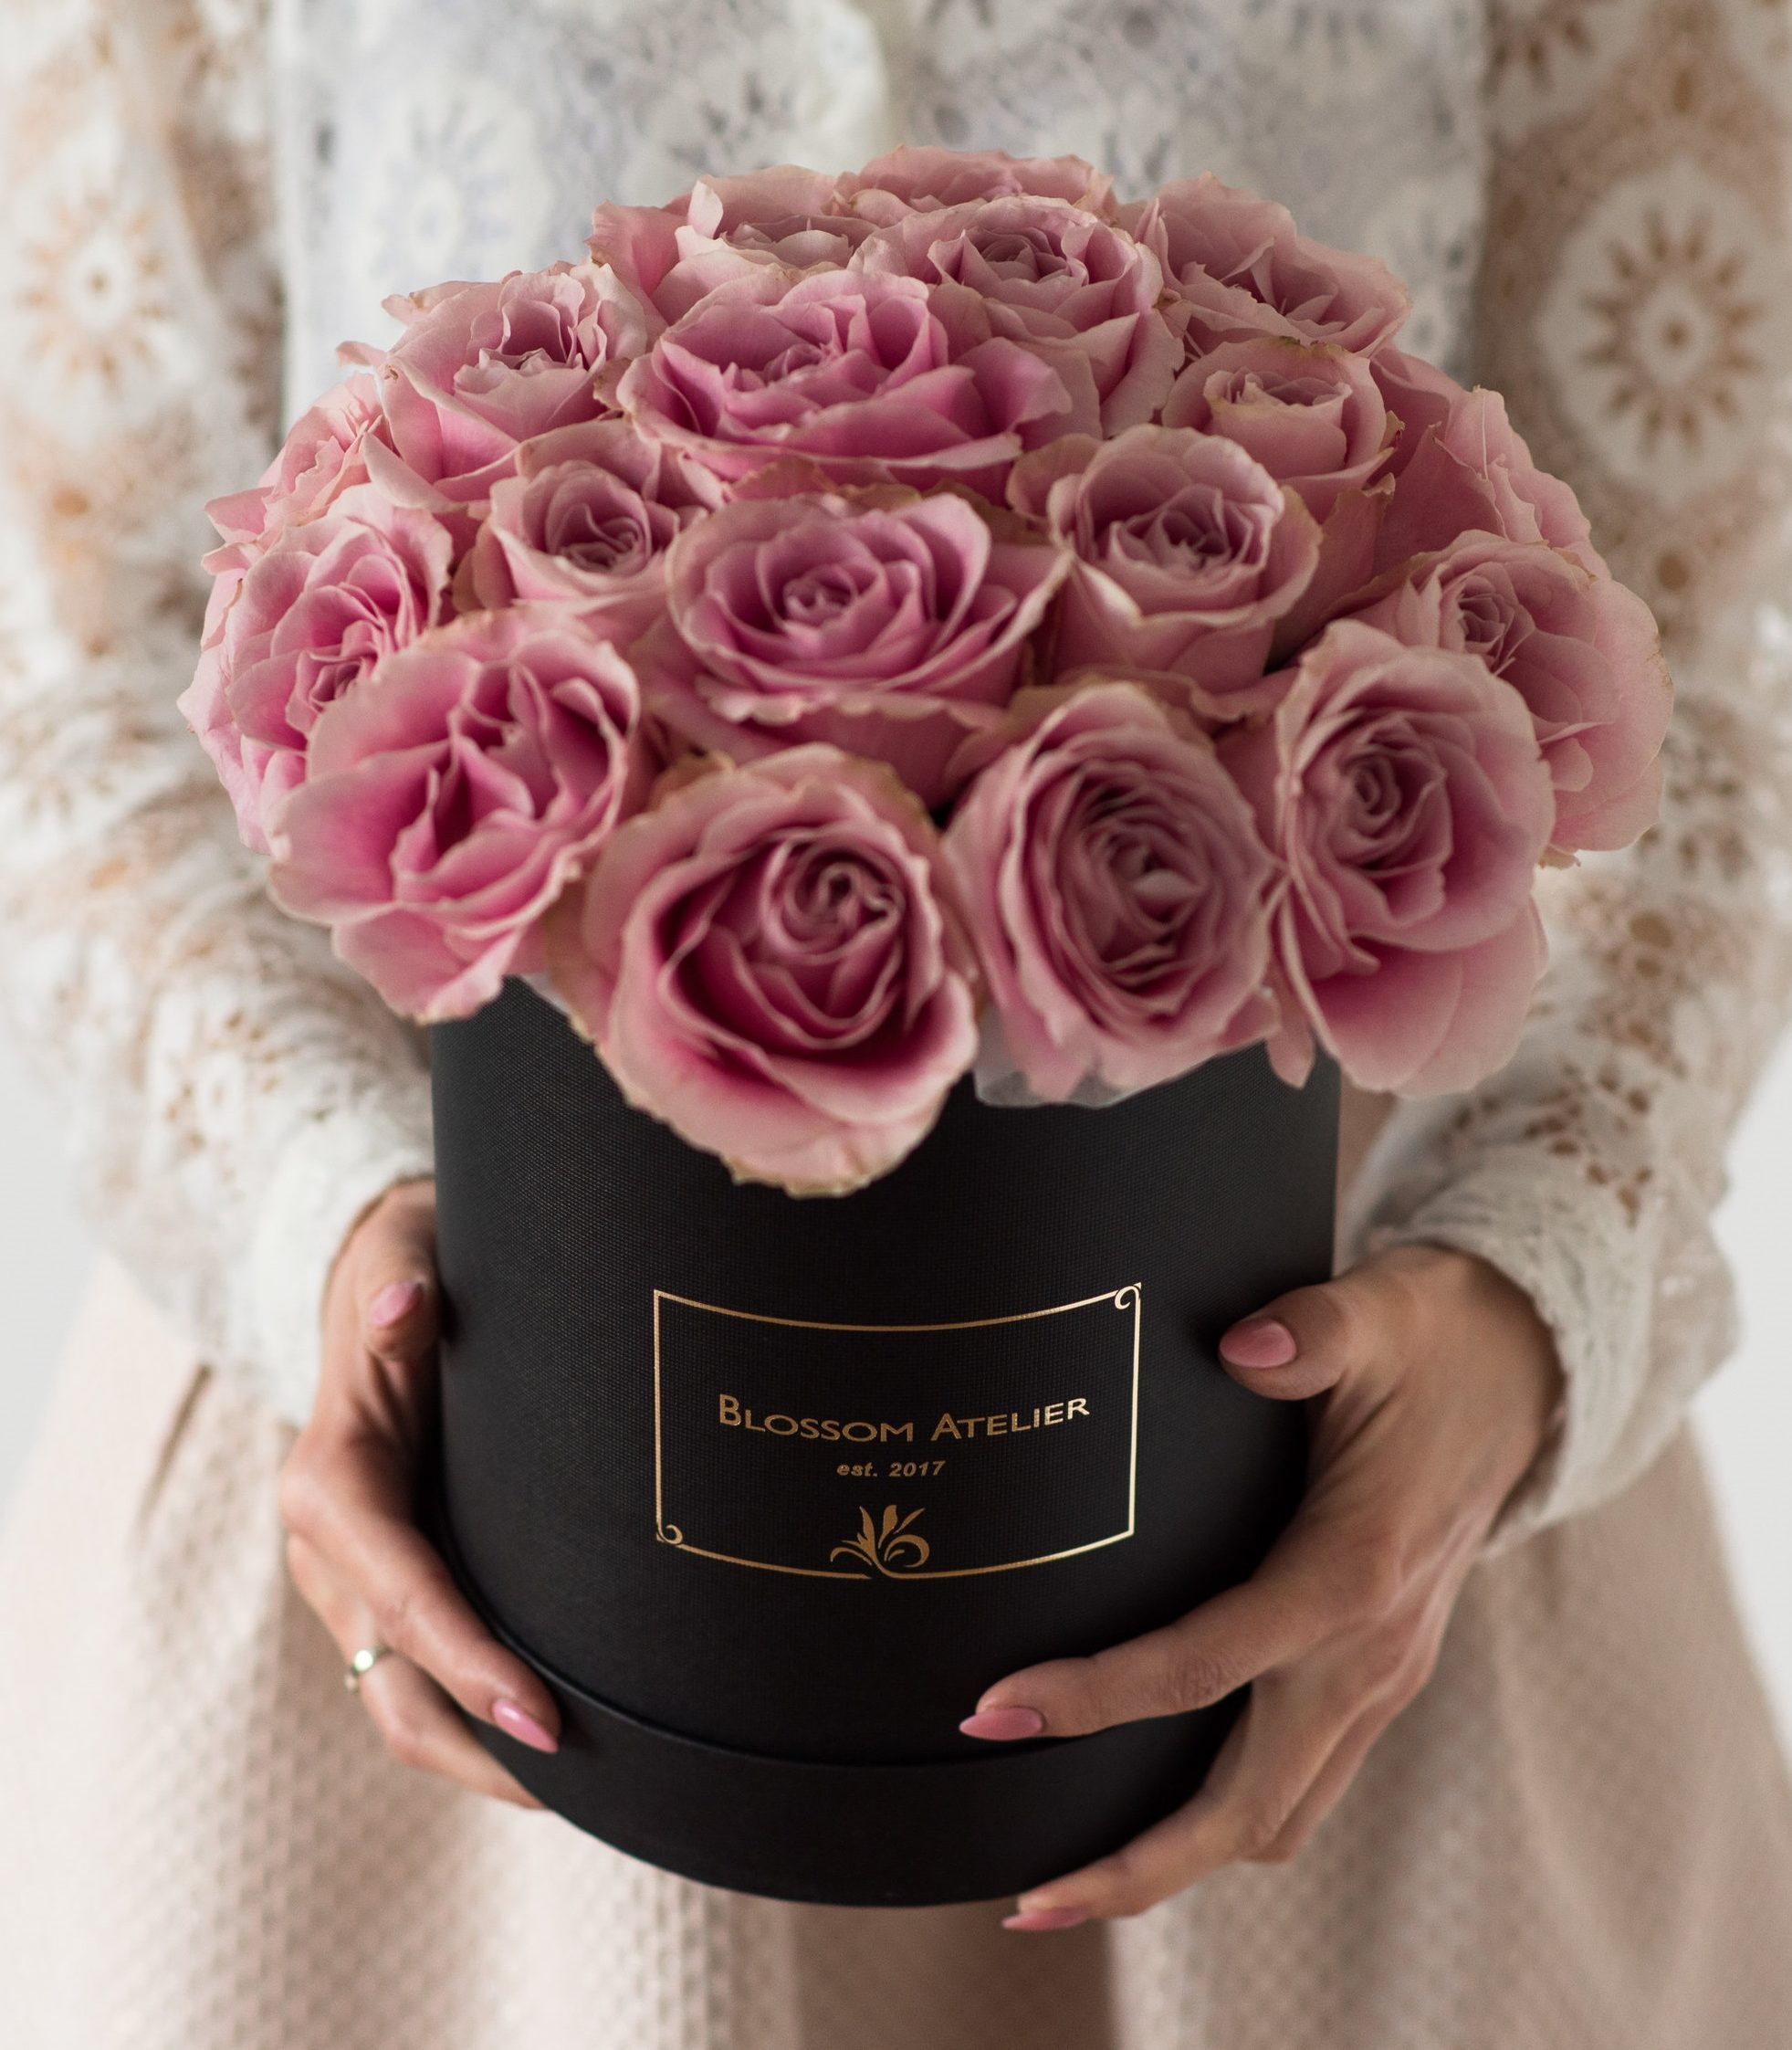 Blossom Box Noir With Delicate Vintage Pink Rose Bouquet Large Grand Blossom Atelier